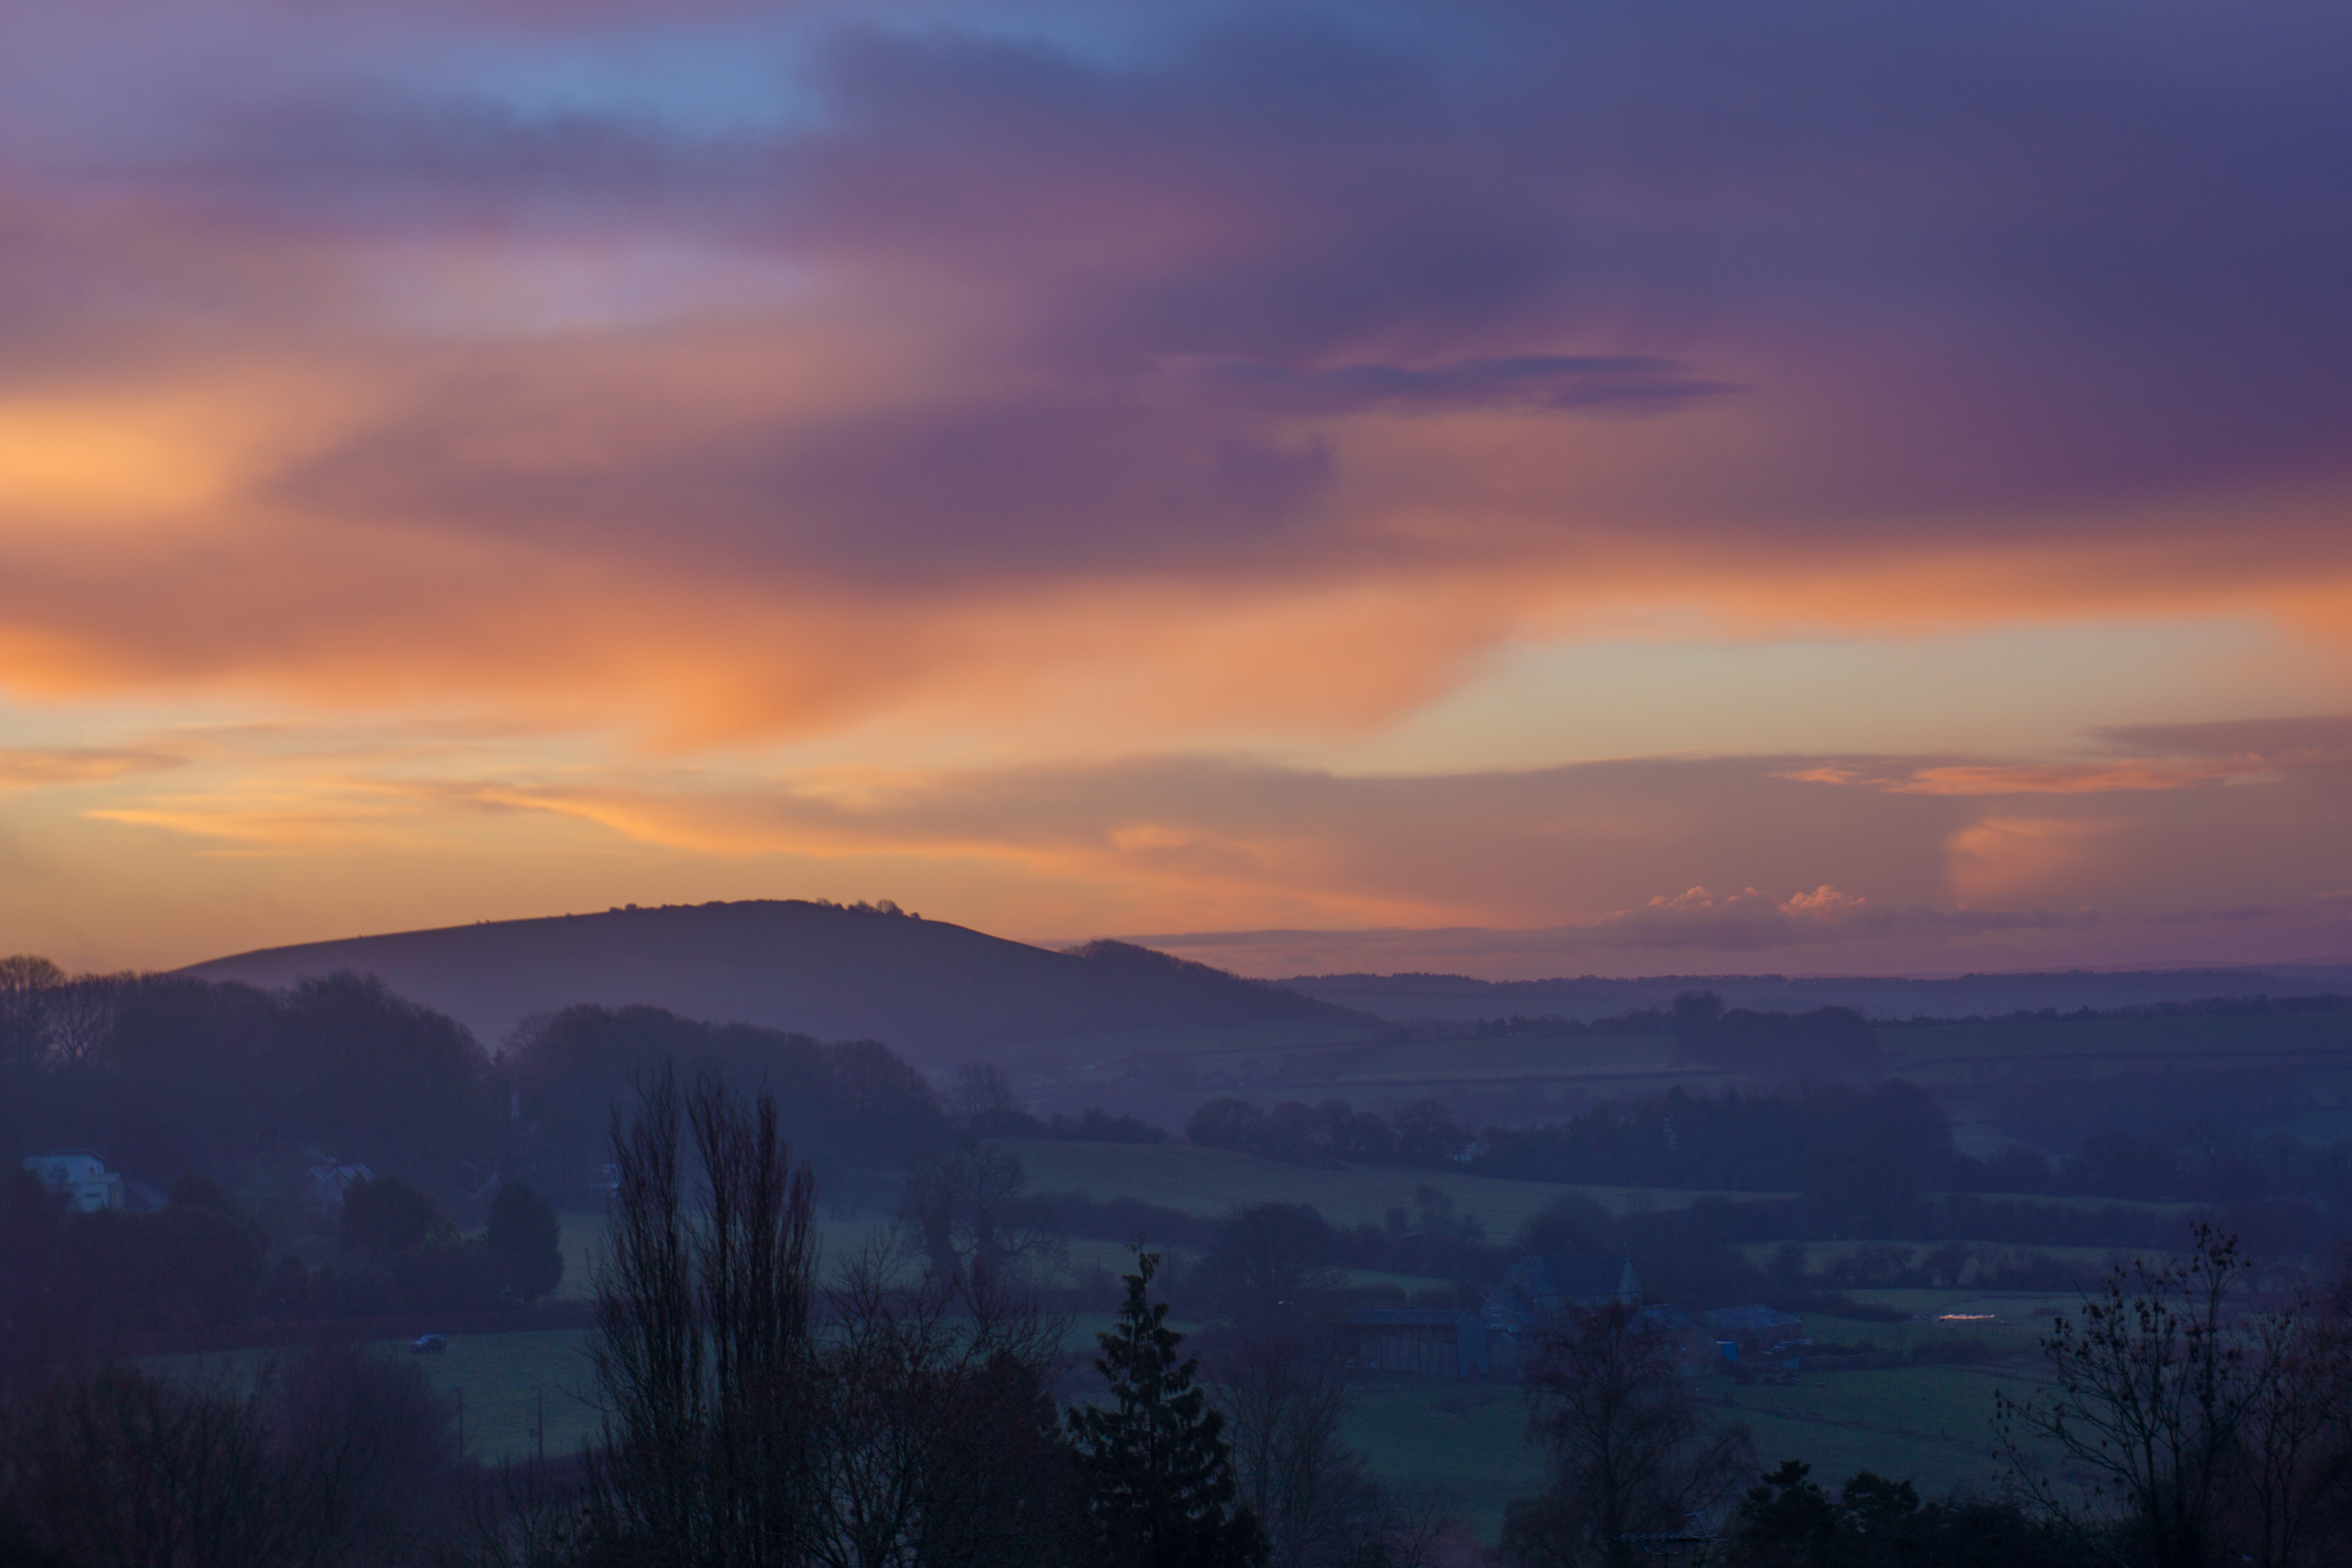 sunrise-over-blackmore-vale1